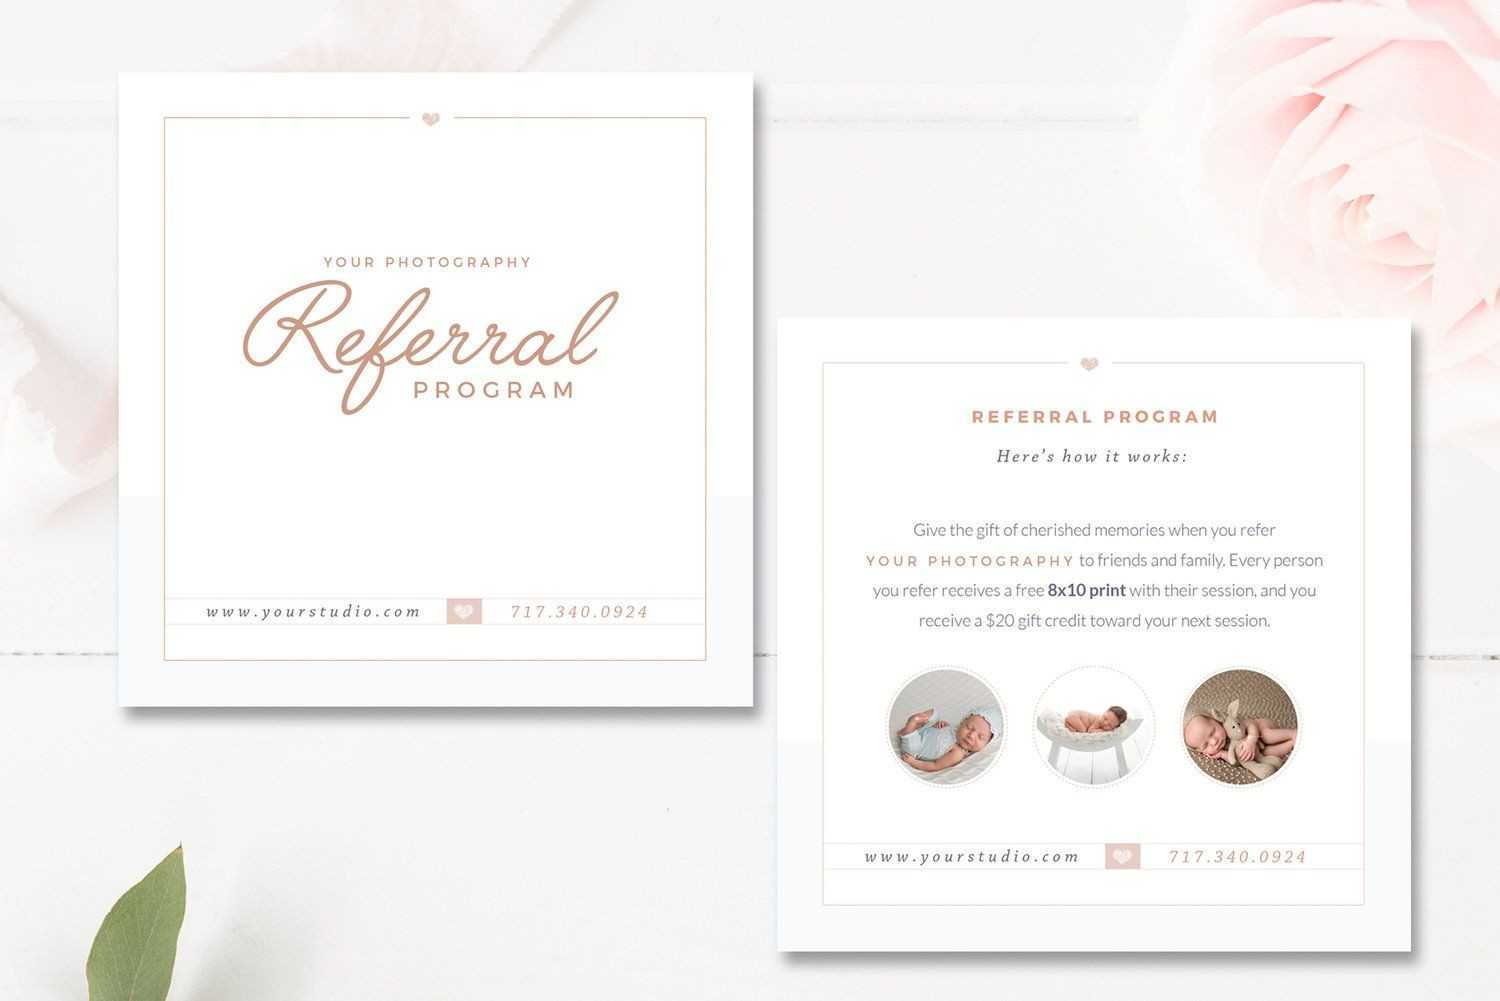 Photography Referral Card Templates, Referral Program With Regard To Photography Referral Card Templates